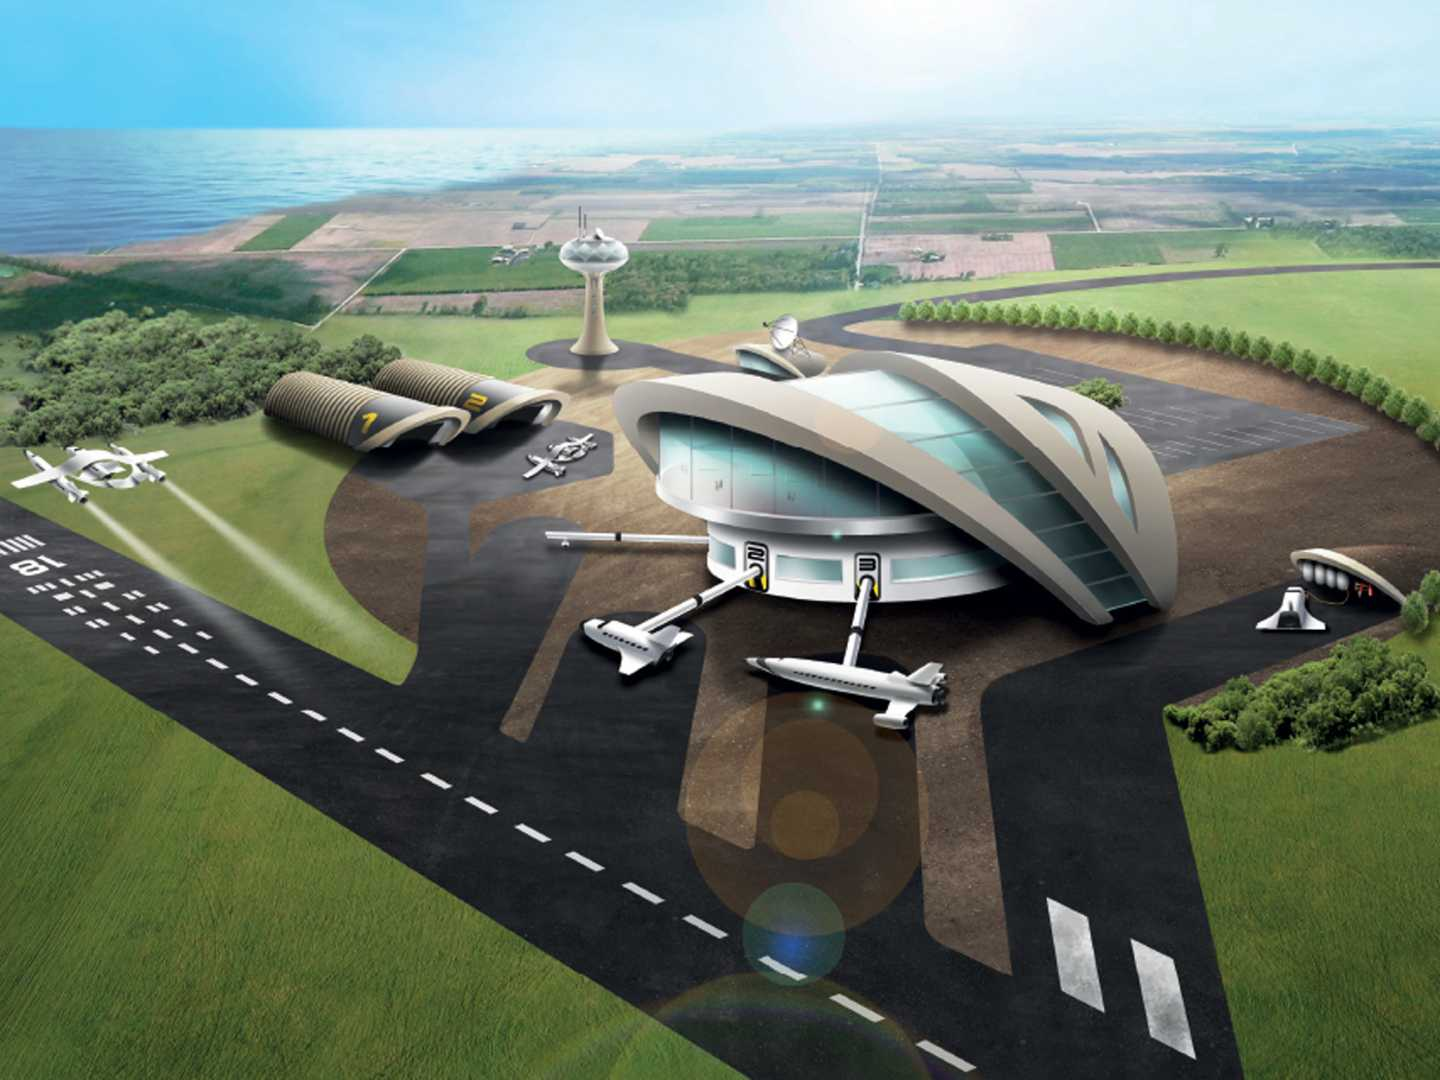 The Spaceport will enable take-off and landing of reusable space vehicles, such as Skylon and Virgin Galactic.